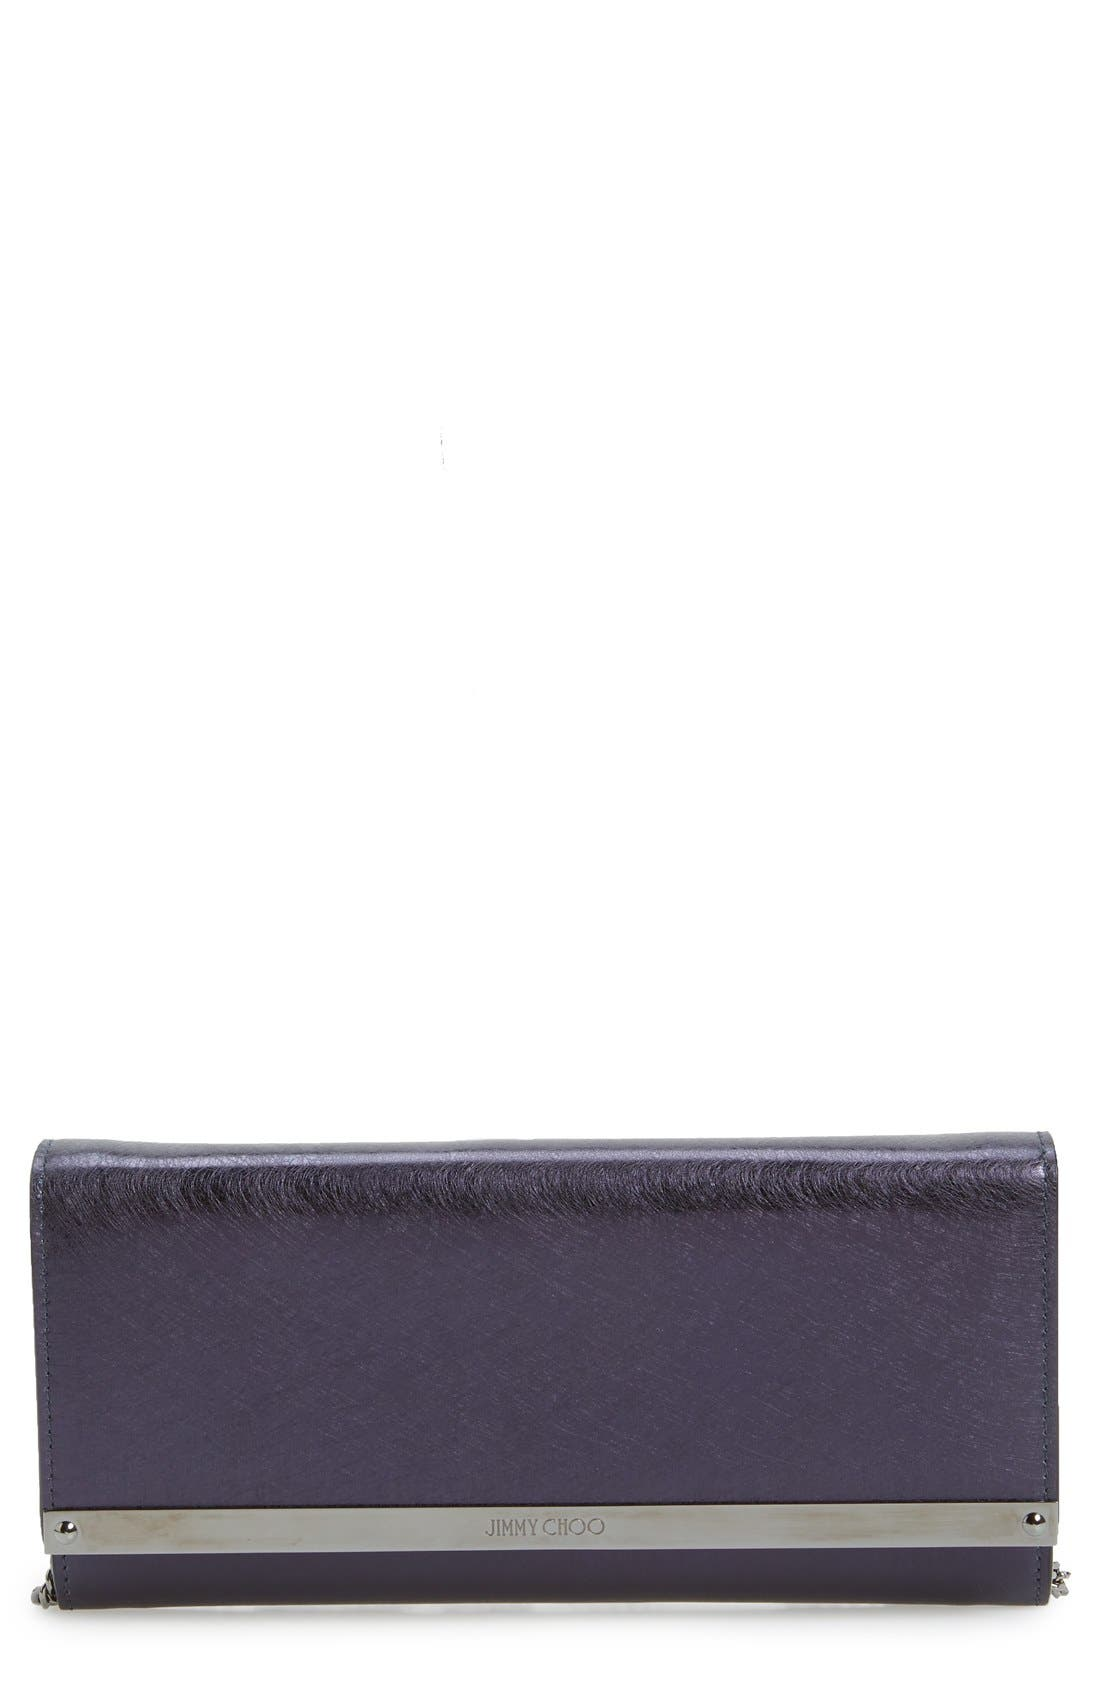 Jimmy Choo 'Milla' Etched Metallic Spazzolato Leather Flap Clutch